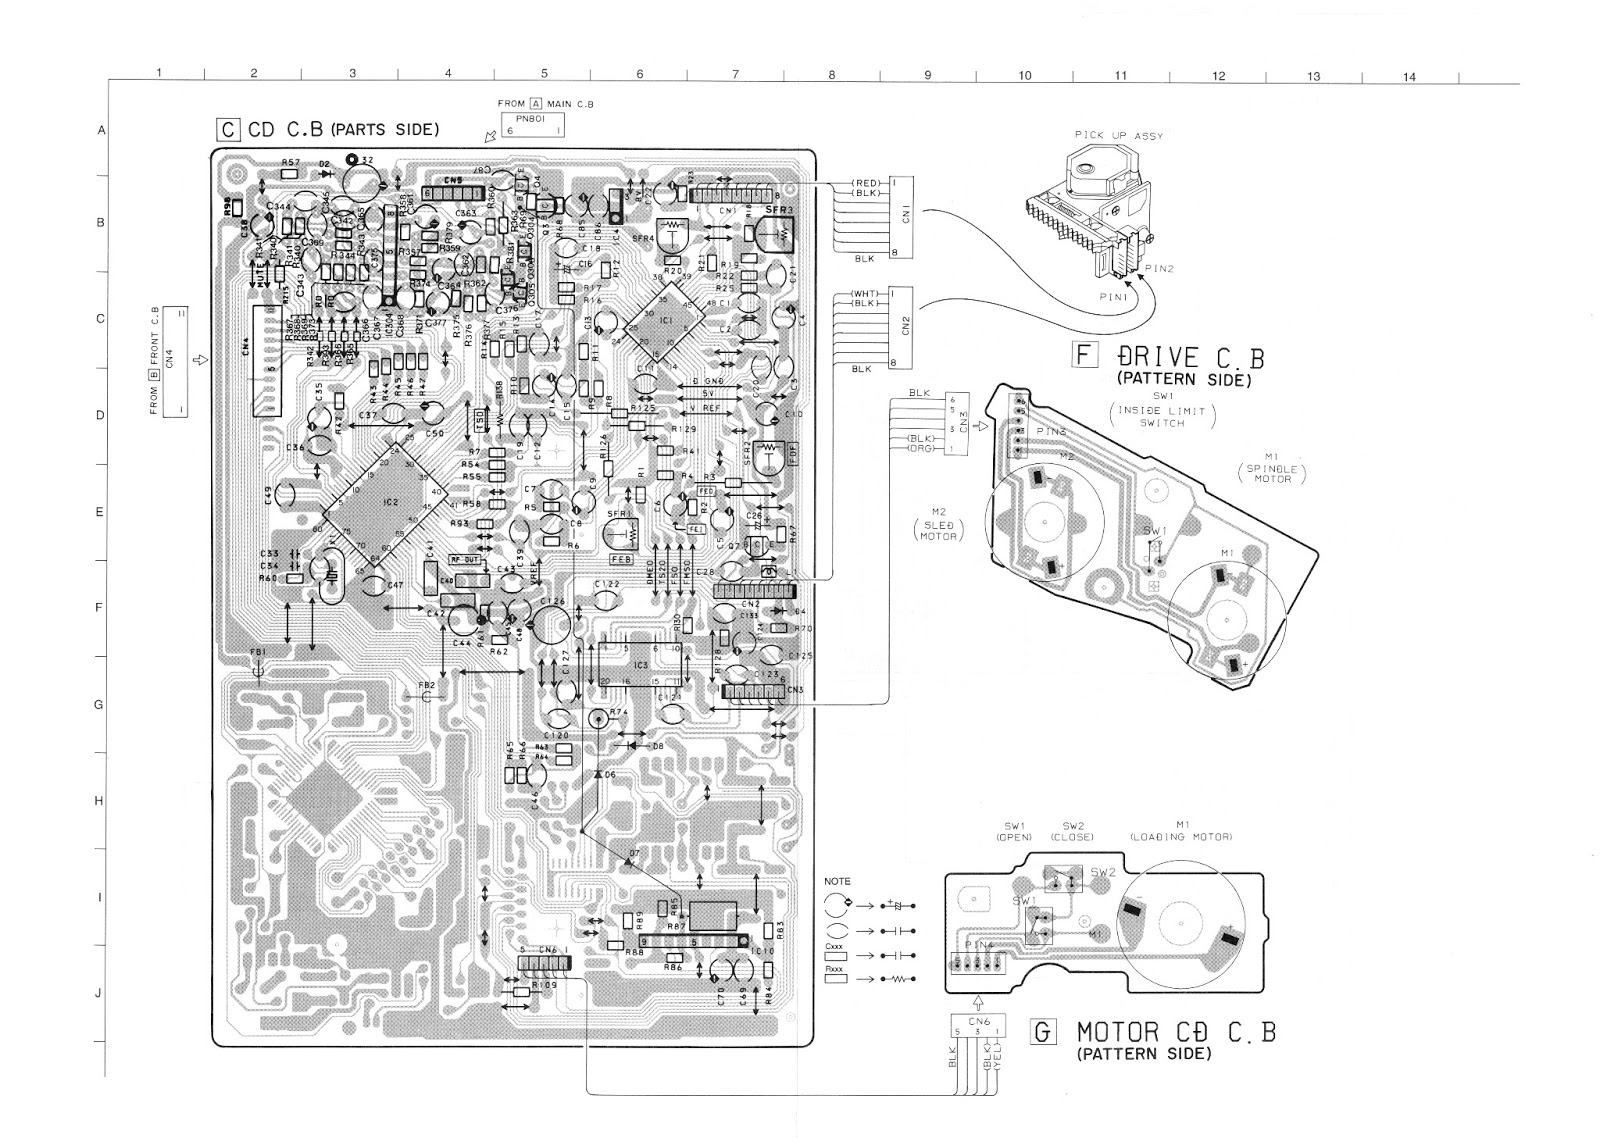 2002 chevy malibu audio wiring diagram 5 ohm 1997 ford f150 cd player imageresizertool com